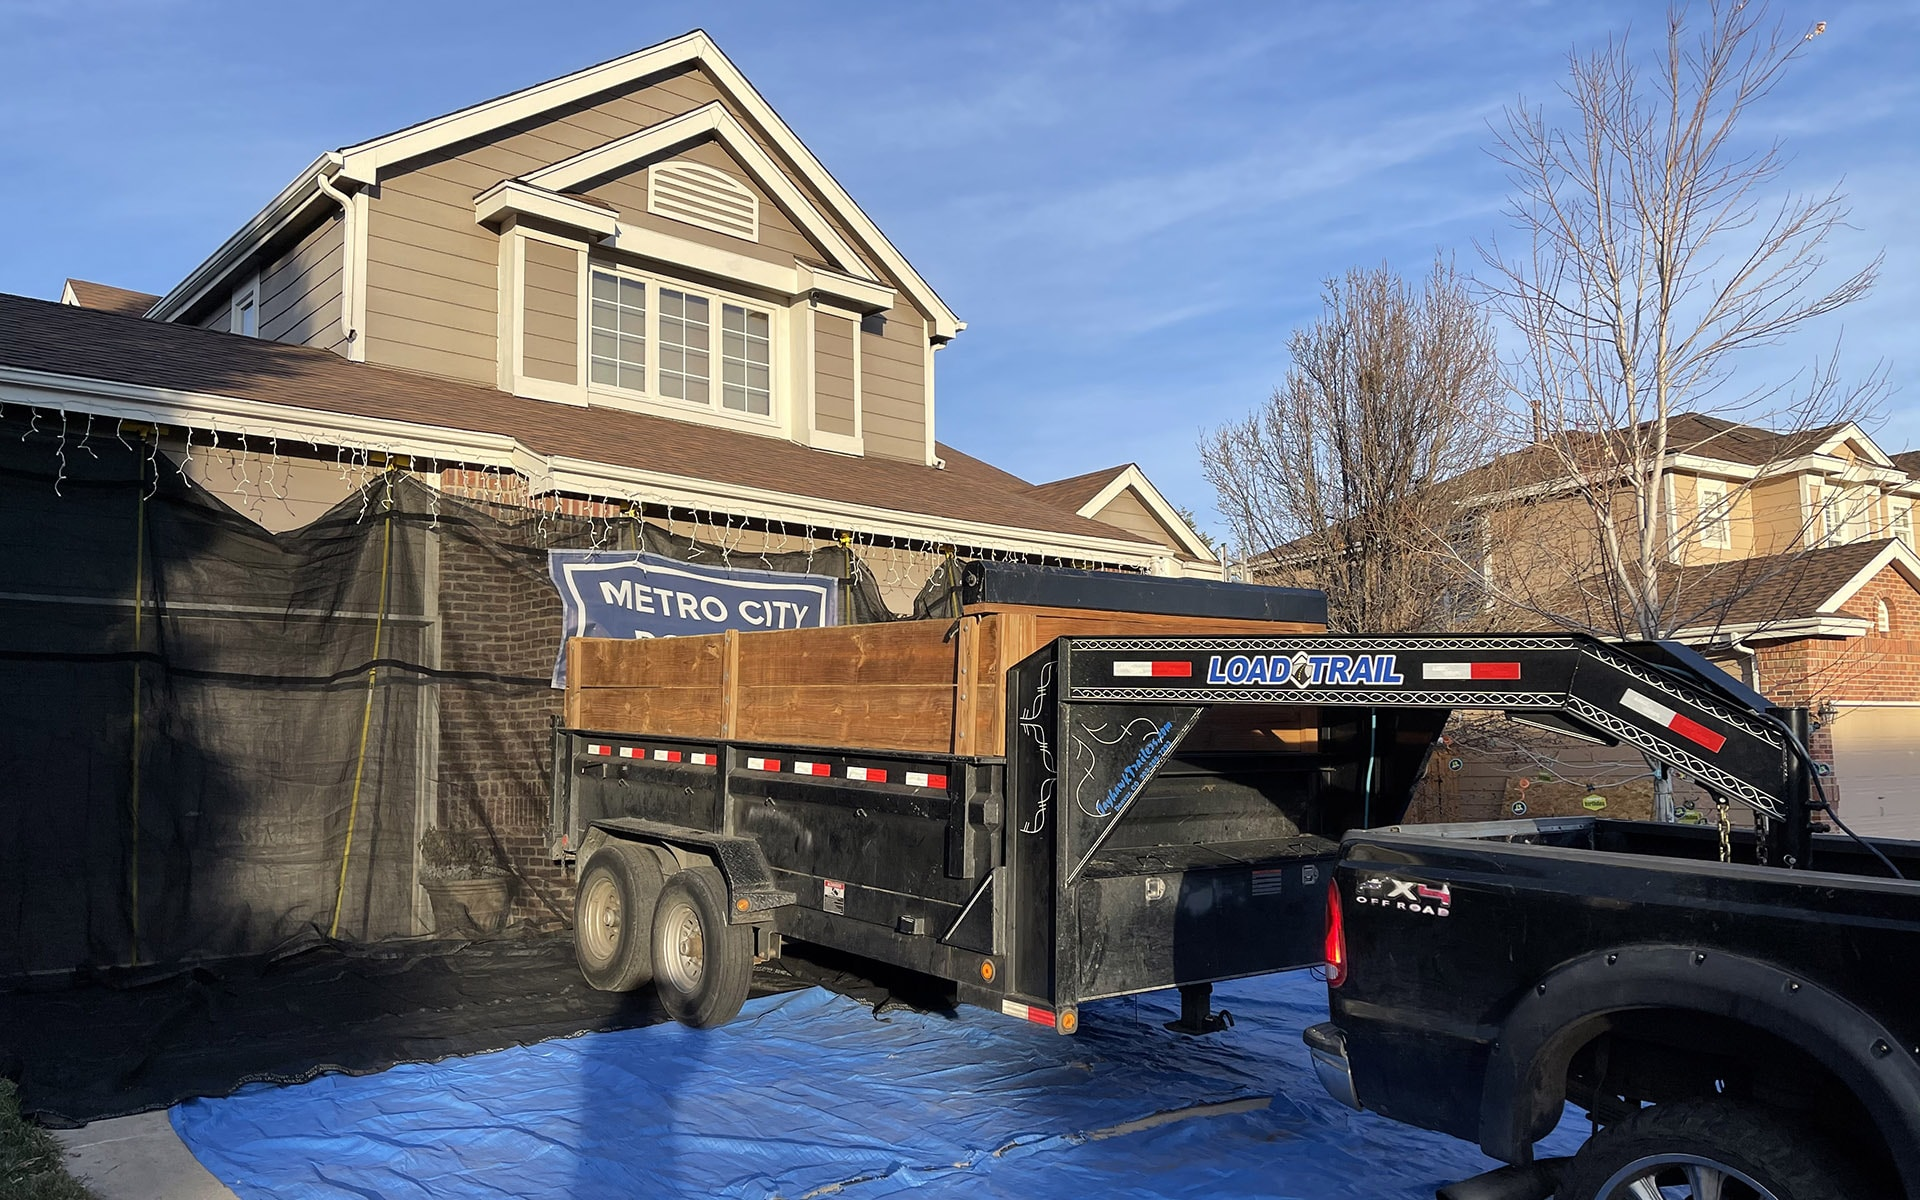 Metro City Roofing landscape protection kit with black roofing trailer backing up to house in the driveway in Littleton, Colorado